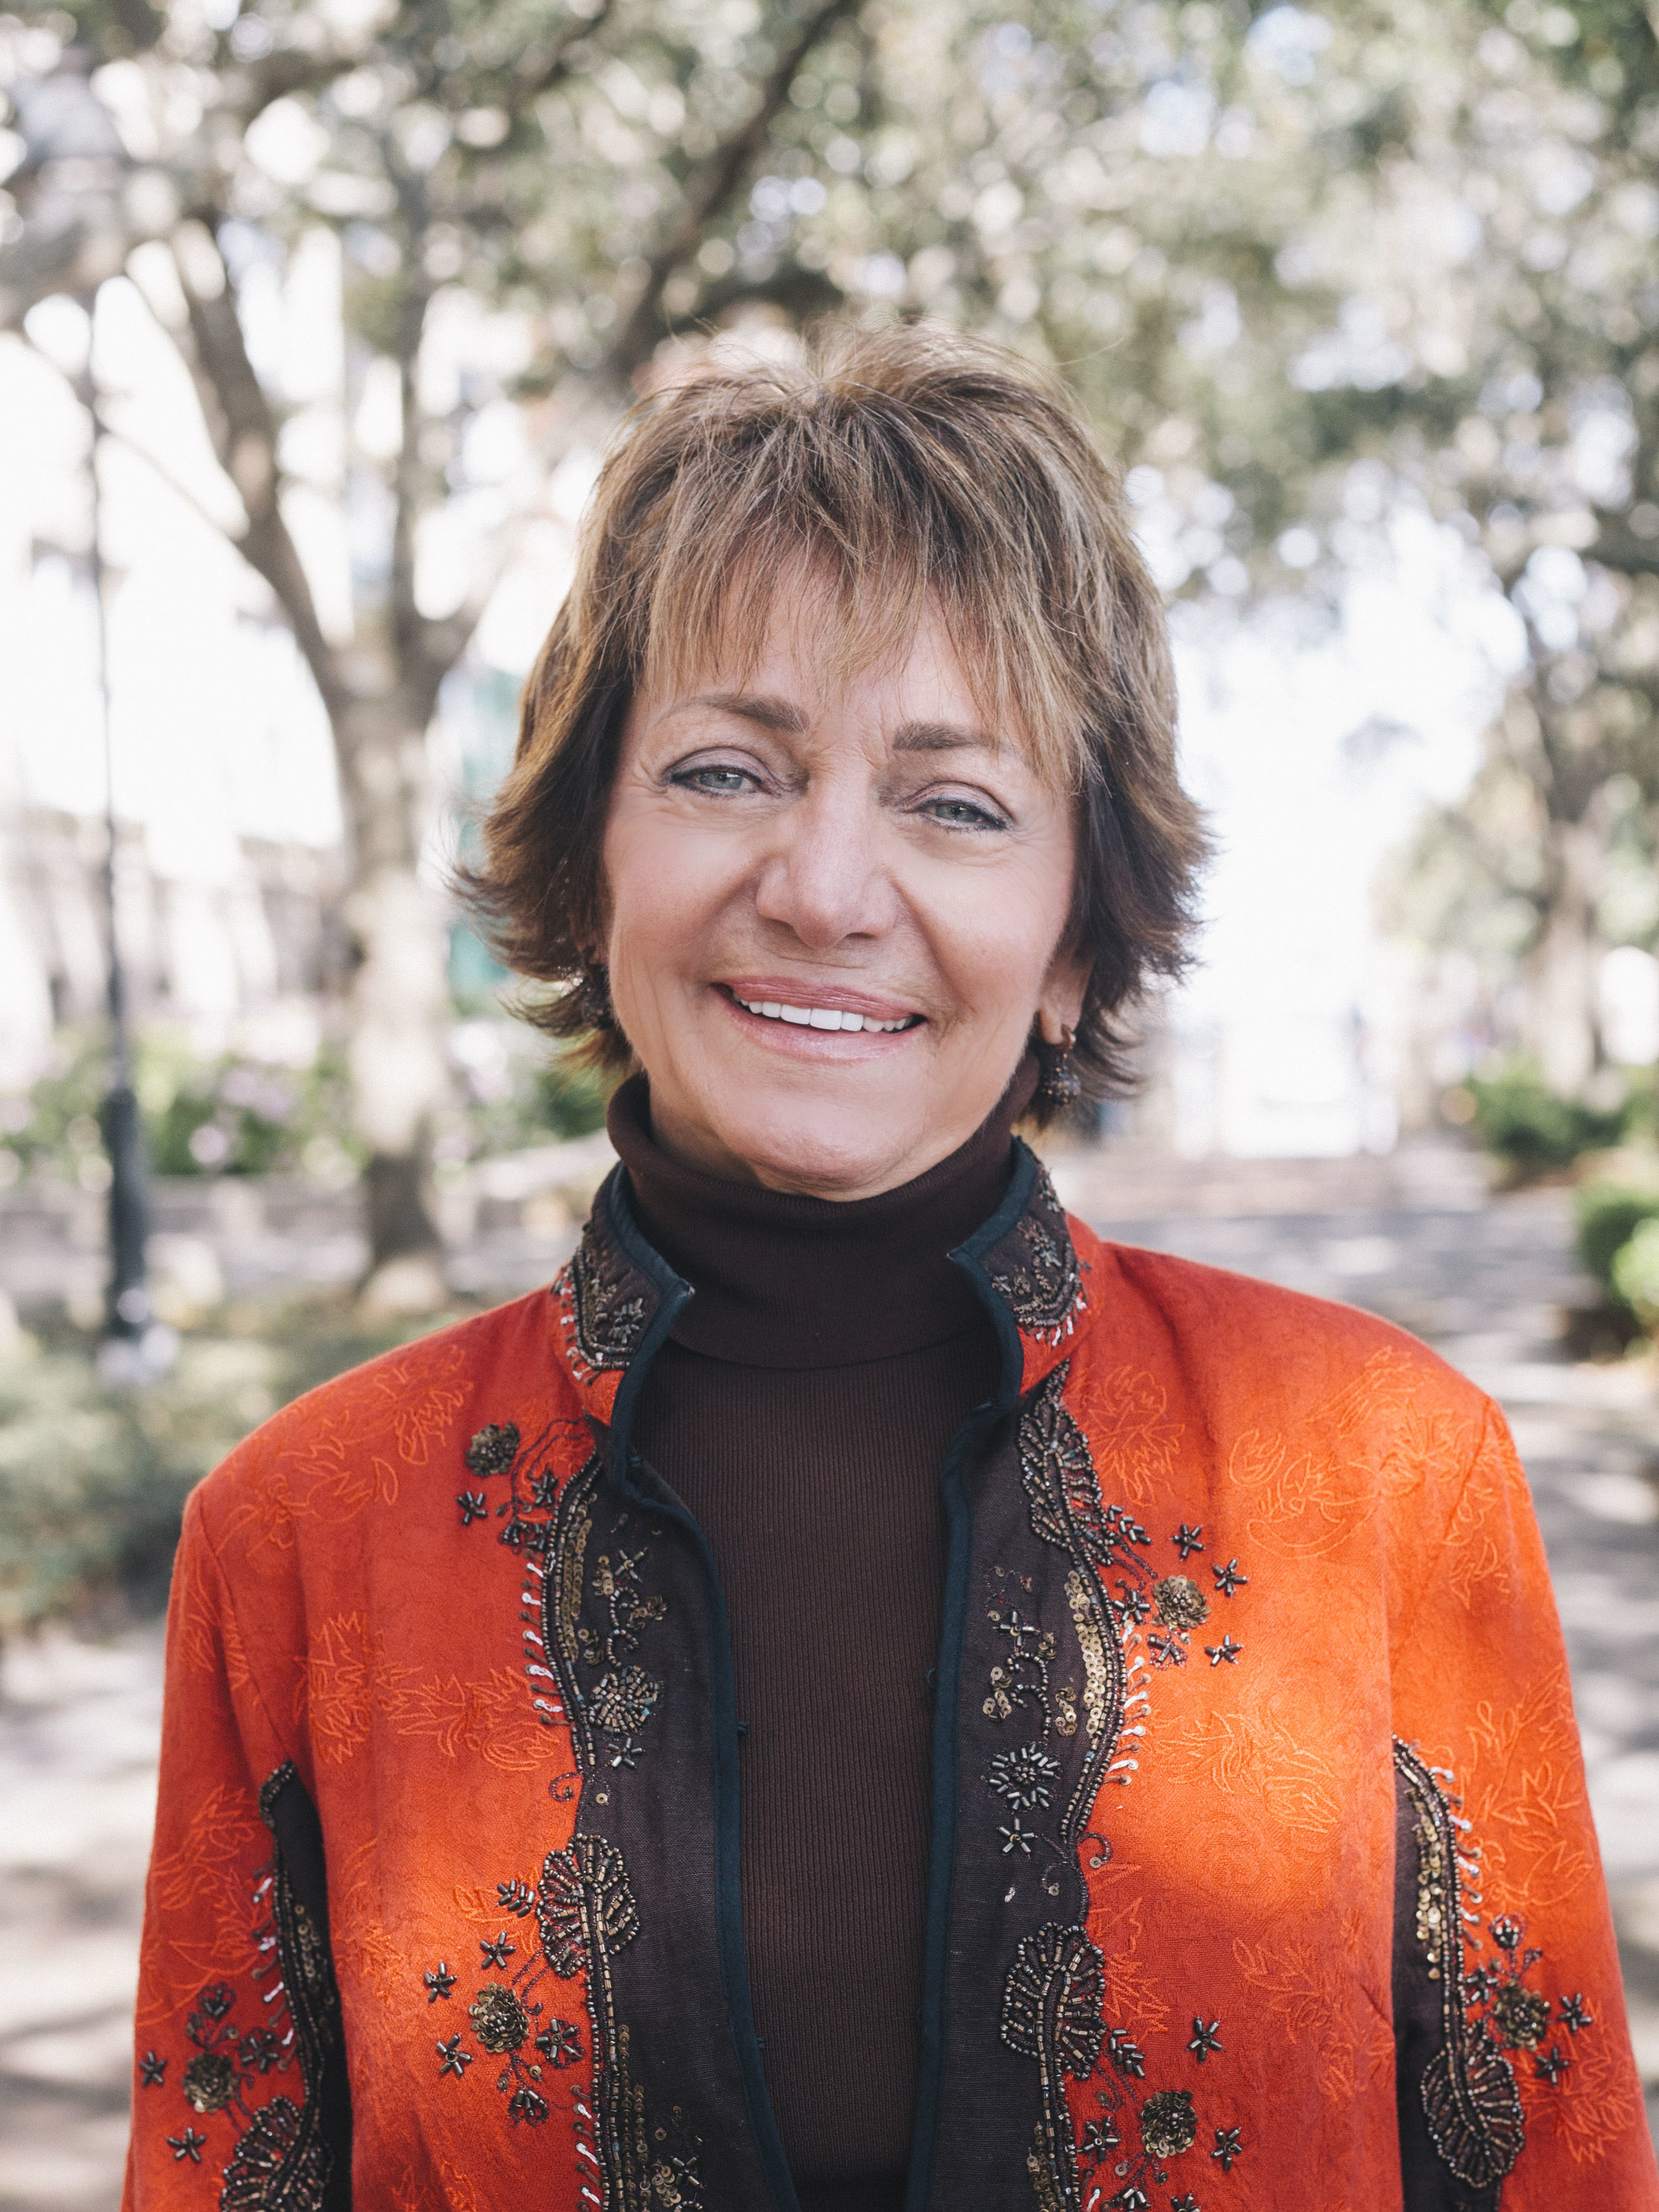 """Debbie Stocker - Debbie StockerPrincipal & Broker-in-ChargePhone: 843.437.7373With a Masters Degree in Education from Western Carolina University, Debbie Stocker is a native of South Carolina and the Broker-In-Charge and one of the Principals of Shoreline International Real Estate. Debbie is a 38-year veteran of commercial real estate and has a proven track record of being one of the top commercial agents in the Charleston tri-county area. In 1985 Debbie created Southern Investment Company, a full service real estate organization and operated as the President and Broker-in-Charge until 1989 at which time the company was merged with O'Shaughnessy. The company went through two additional mergers before she managed and cultivated the Commercial Sales Division at Coldwell Banker Classic Commercial when she received recognition in 1999 as Top Agent in the Southeast for Coldwell Banker Commercial, out of a total of 88 companies, and was one of the Top Five Agents for Coldwell Banker International, out of a total of 3000 Associates. At the turn of the millennium, she had become """"Queen of King Street"""" and was instrumental in negotiating over 50 sales and/ or retail leases for many prestigious tenants who remain loyal clients today.She has an extensive knowledge of high profile clients, local contacts and landowners and immense experience with commercial real estate negotiations, to include but not limited to, hotel acquisition & disposition, large development & resort properties, Tenant & Buyer representation, tax & investment incentives and site selection for major commercial retailers. Debbie has owned 2 homes and several development parcels in Costa Rica and has first-hand experience in international transactions in Central America along with a network of talented contacts to facilitate successful acquisitions. She is a member of the National and the Charleston Trident Association of Realtors, International President's Elite, Chairman's Circle, and is a Certified Commerc"""